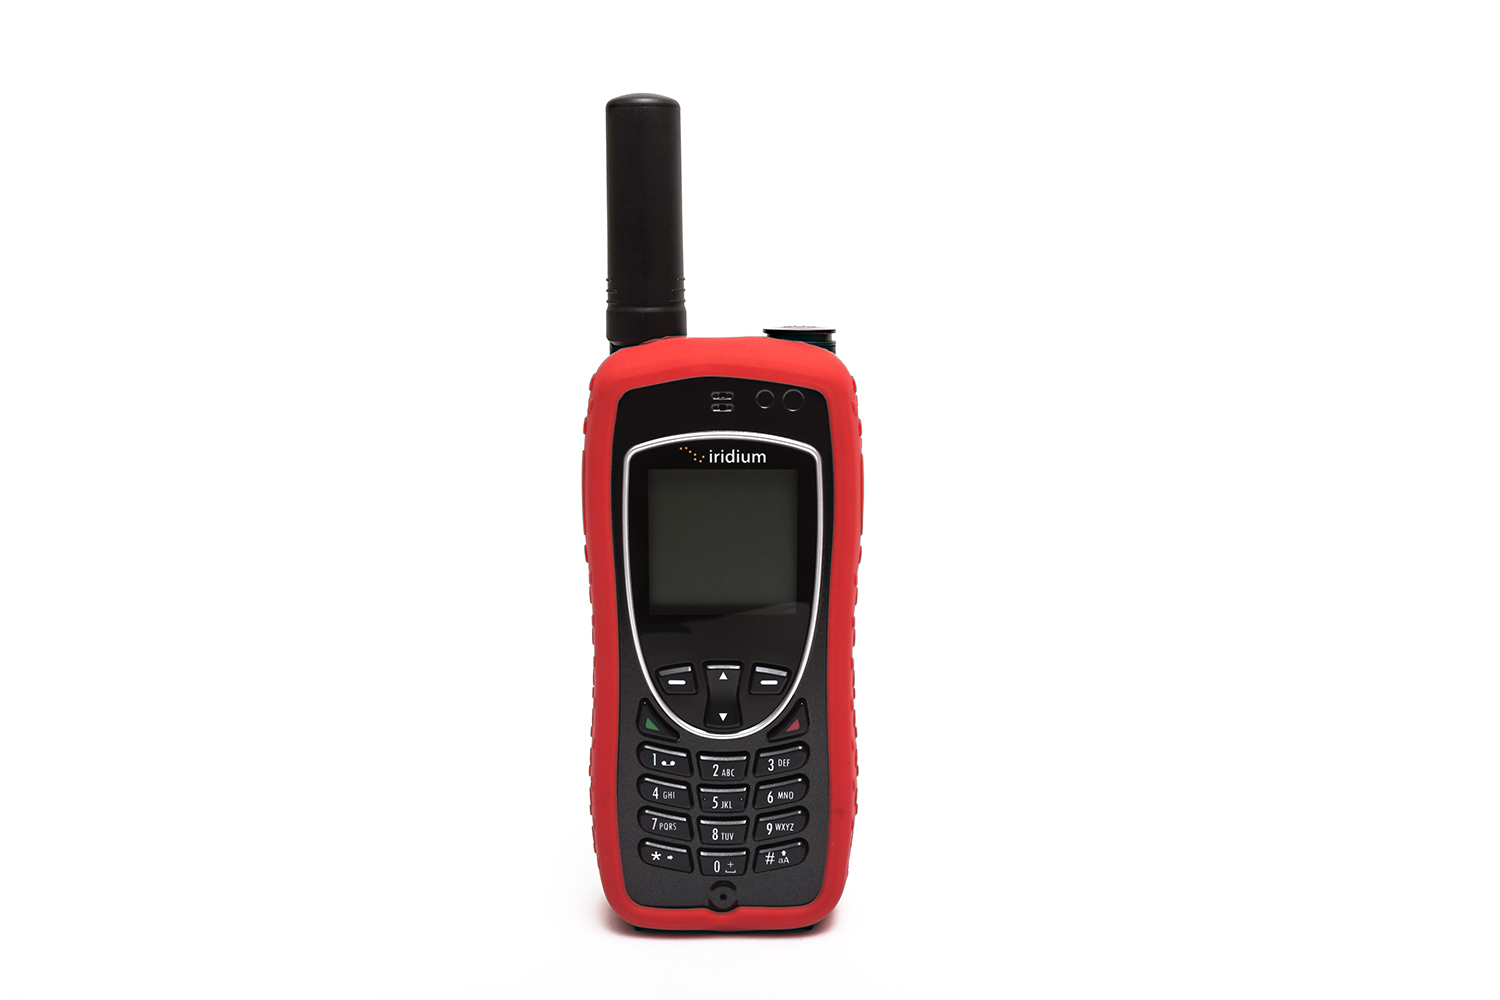 iridium extreme 9575 satellite phone manual